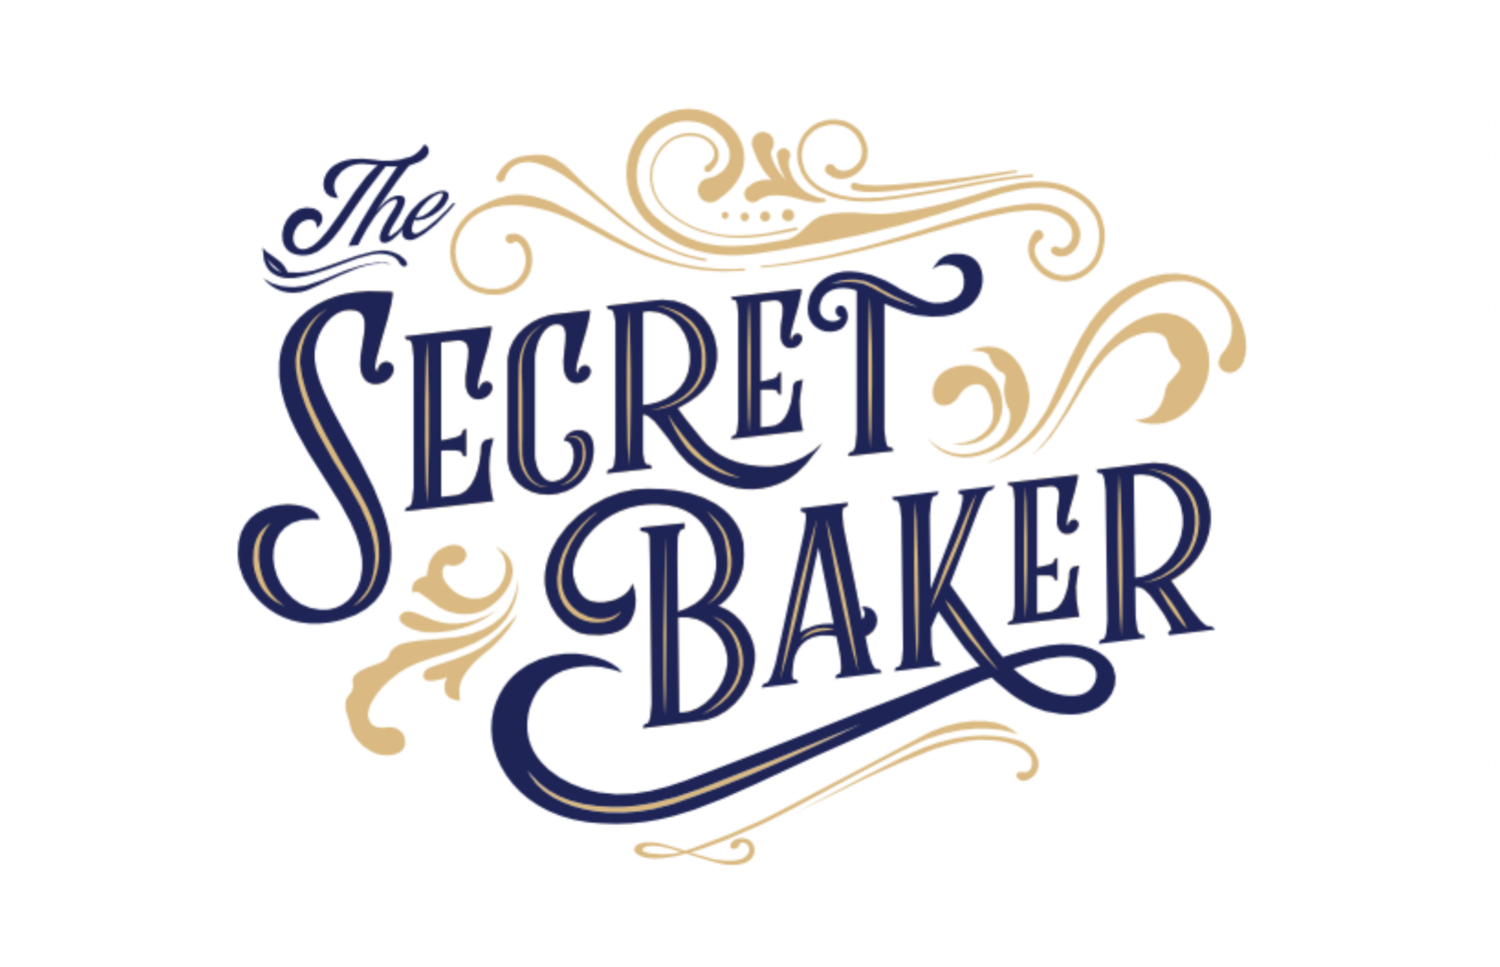 The Secret Baker